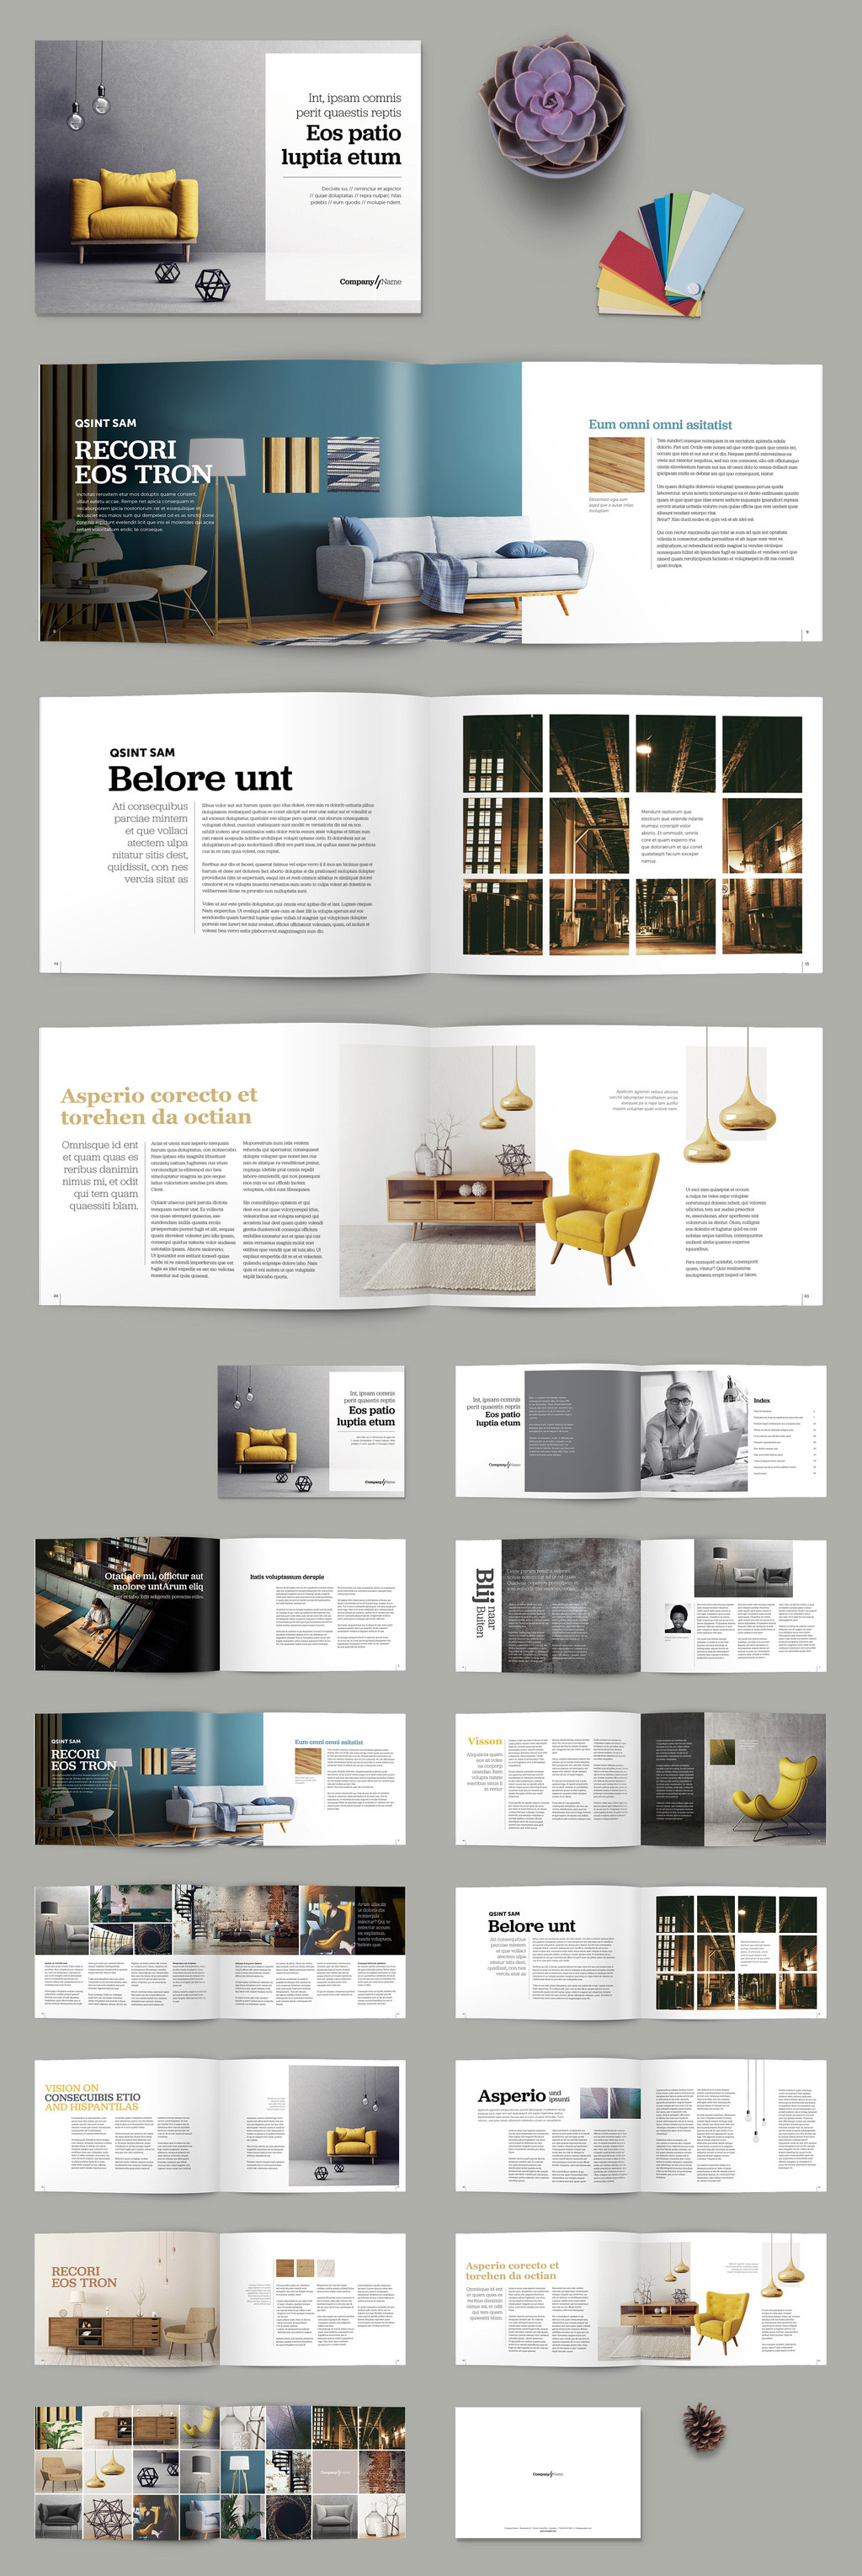 Adobe InDesign Brochure Template with Yellow Accents